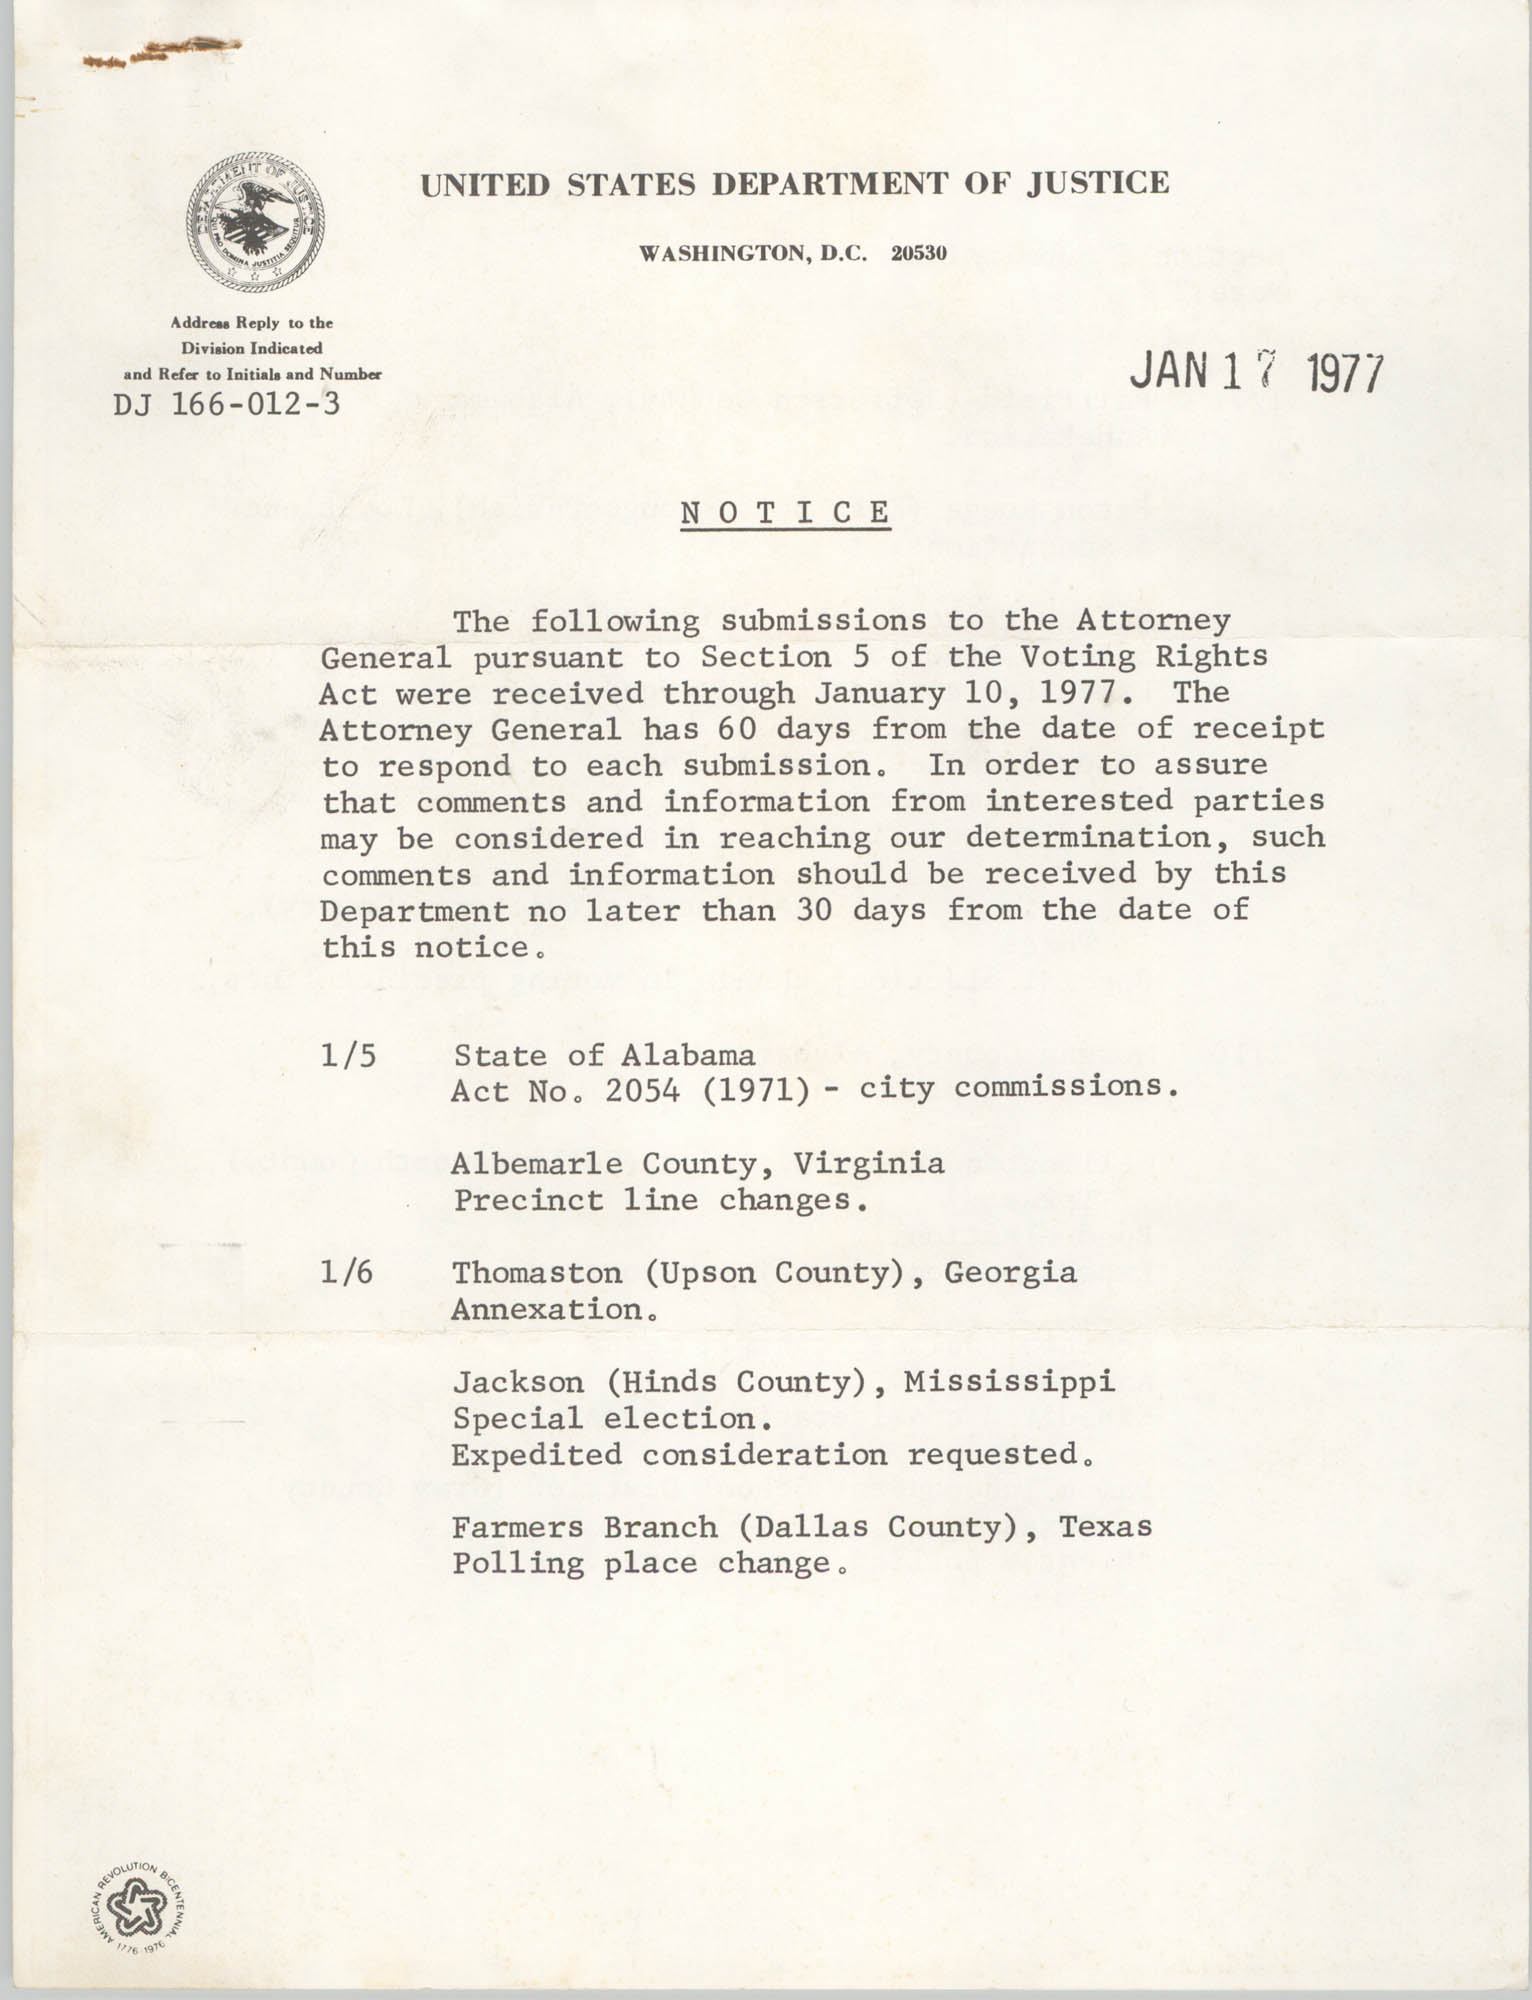 United States Department of Justice Notice, January 17, 1977